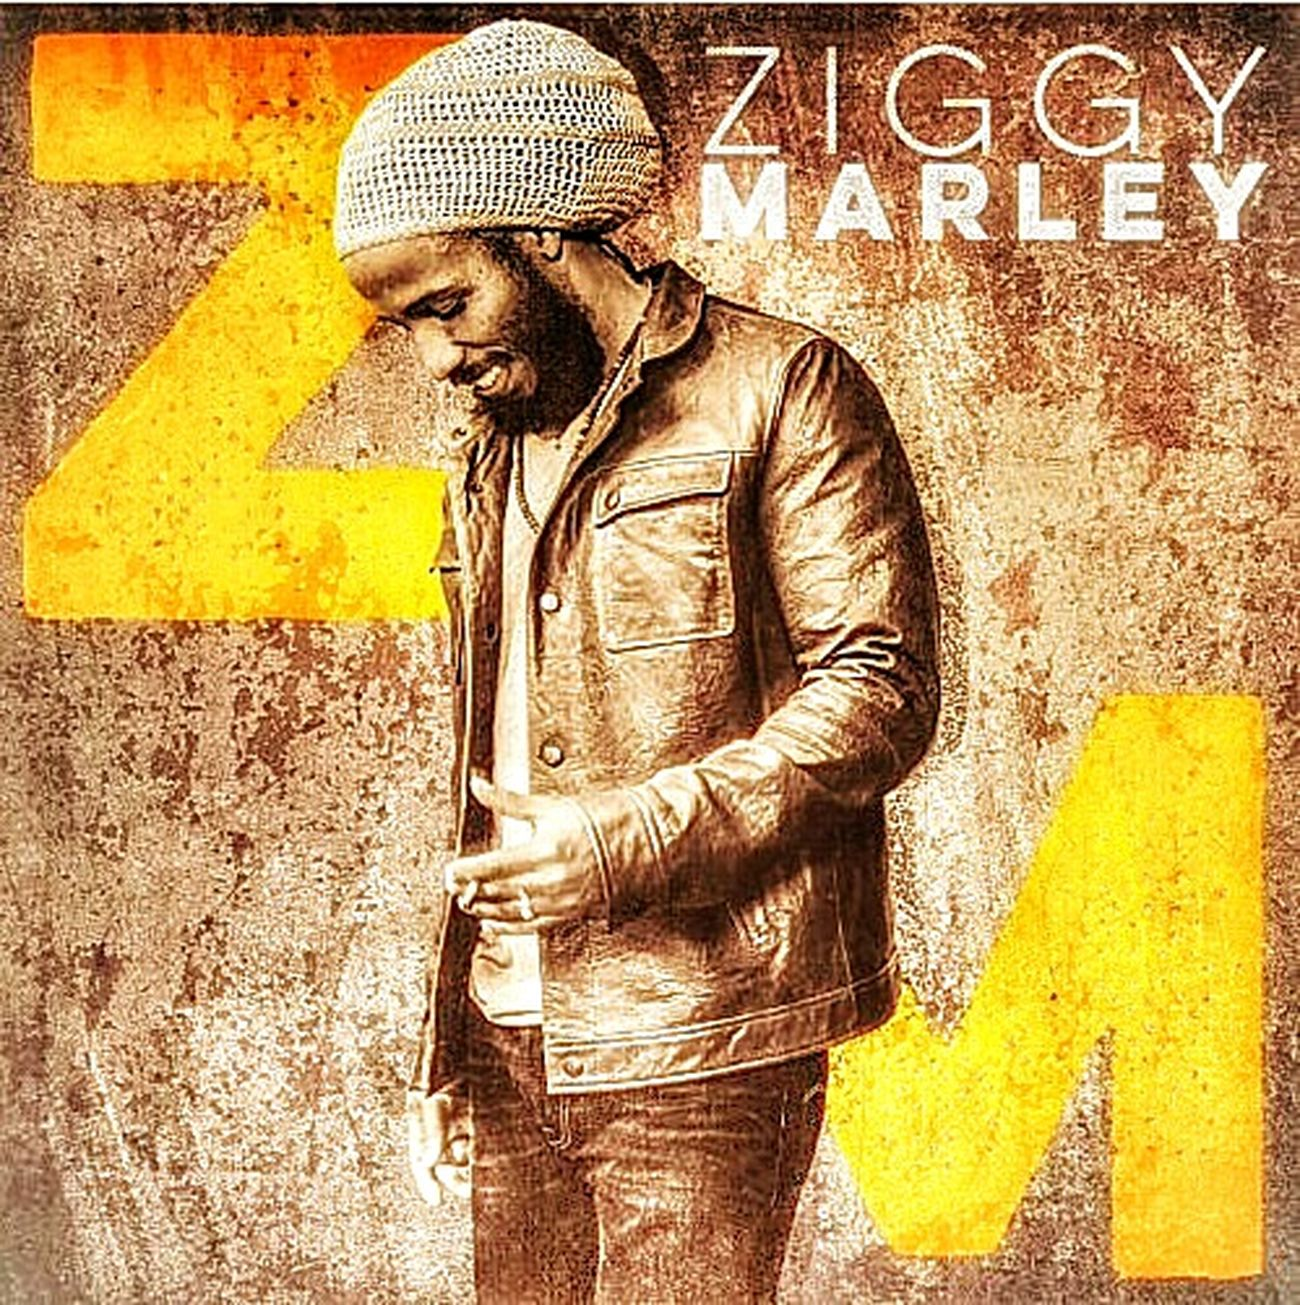 Legendary Jahlove RASTA Ziggymarley New Album Album Cover Peace ✌ Dreadlocks Son Of The King Beautiful Music One Love One People